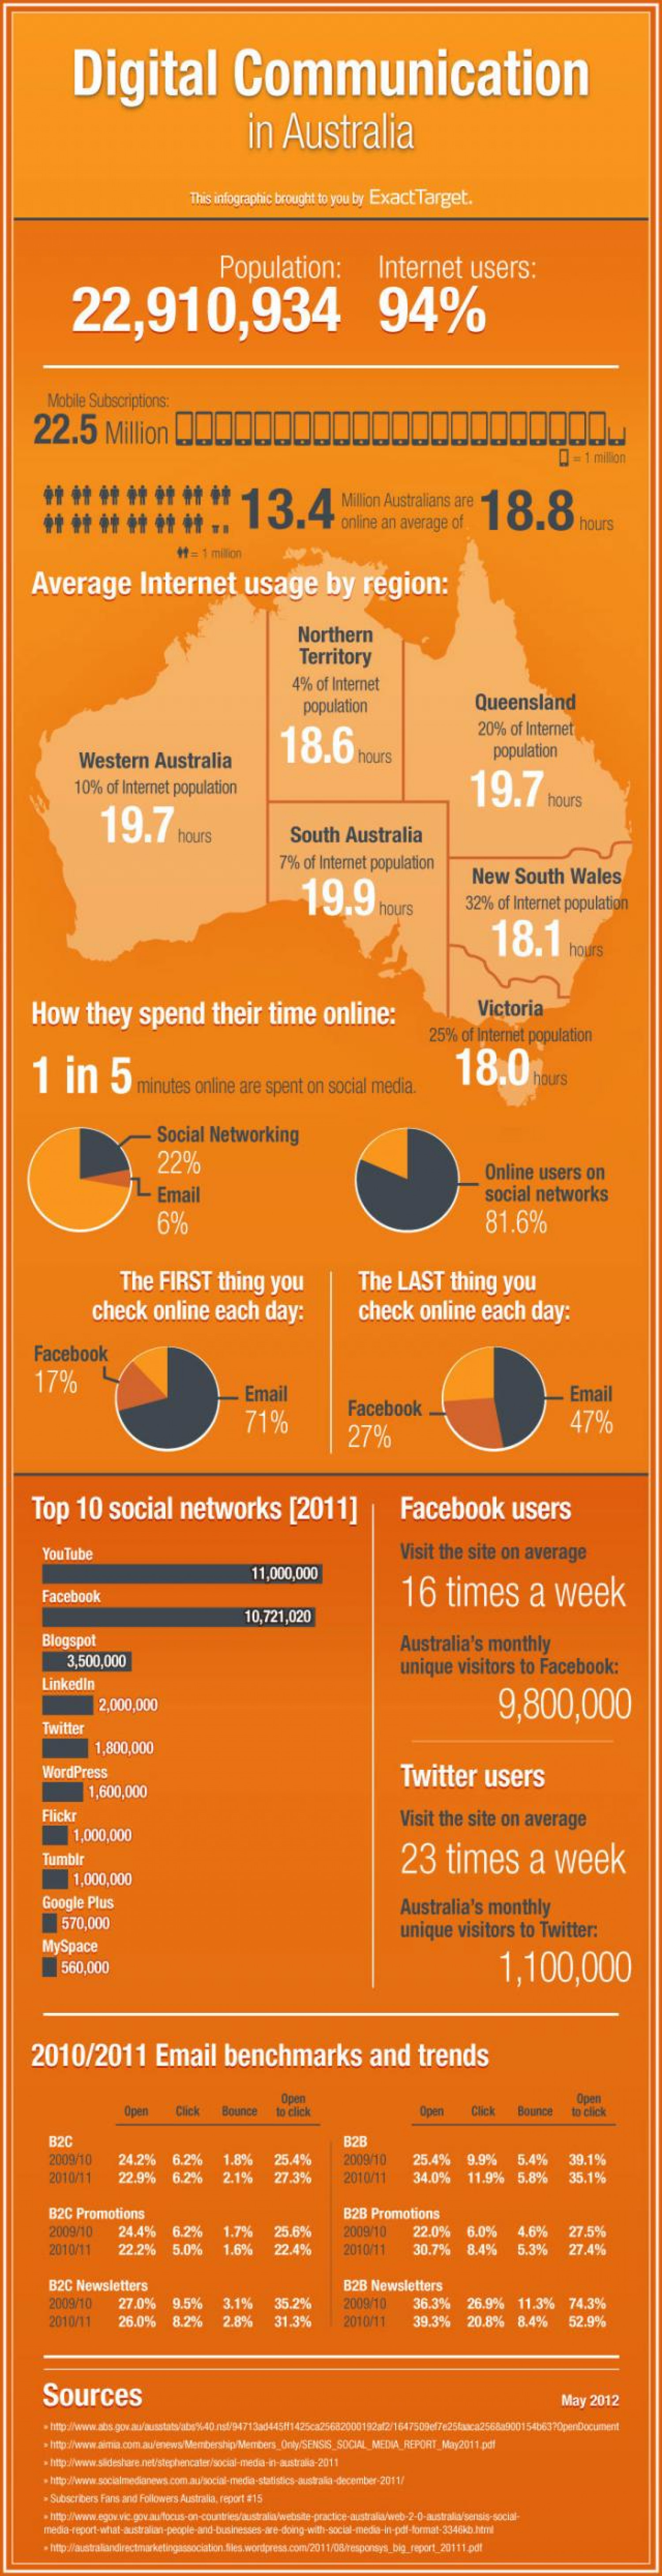 The Australian Social Mobile and Email Revolution Infographic